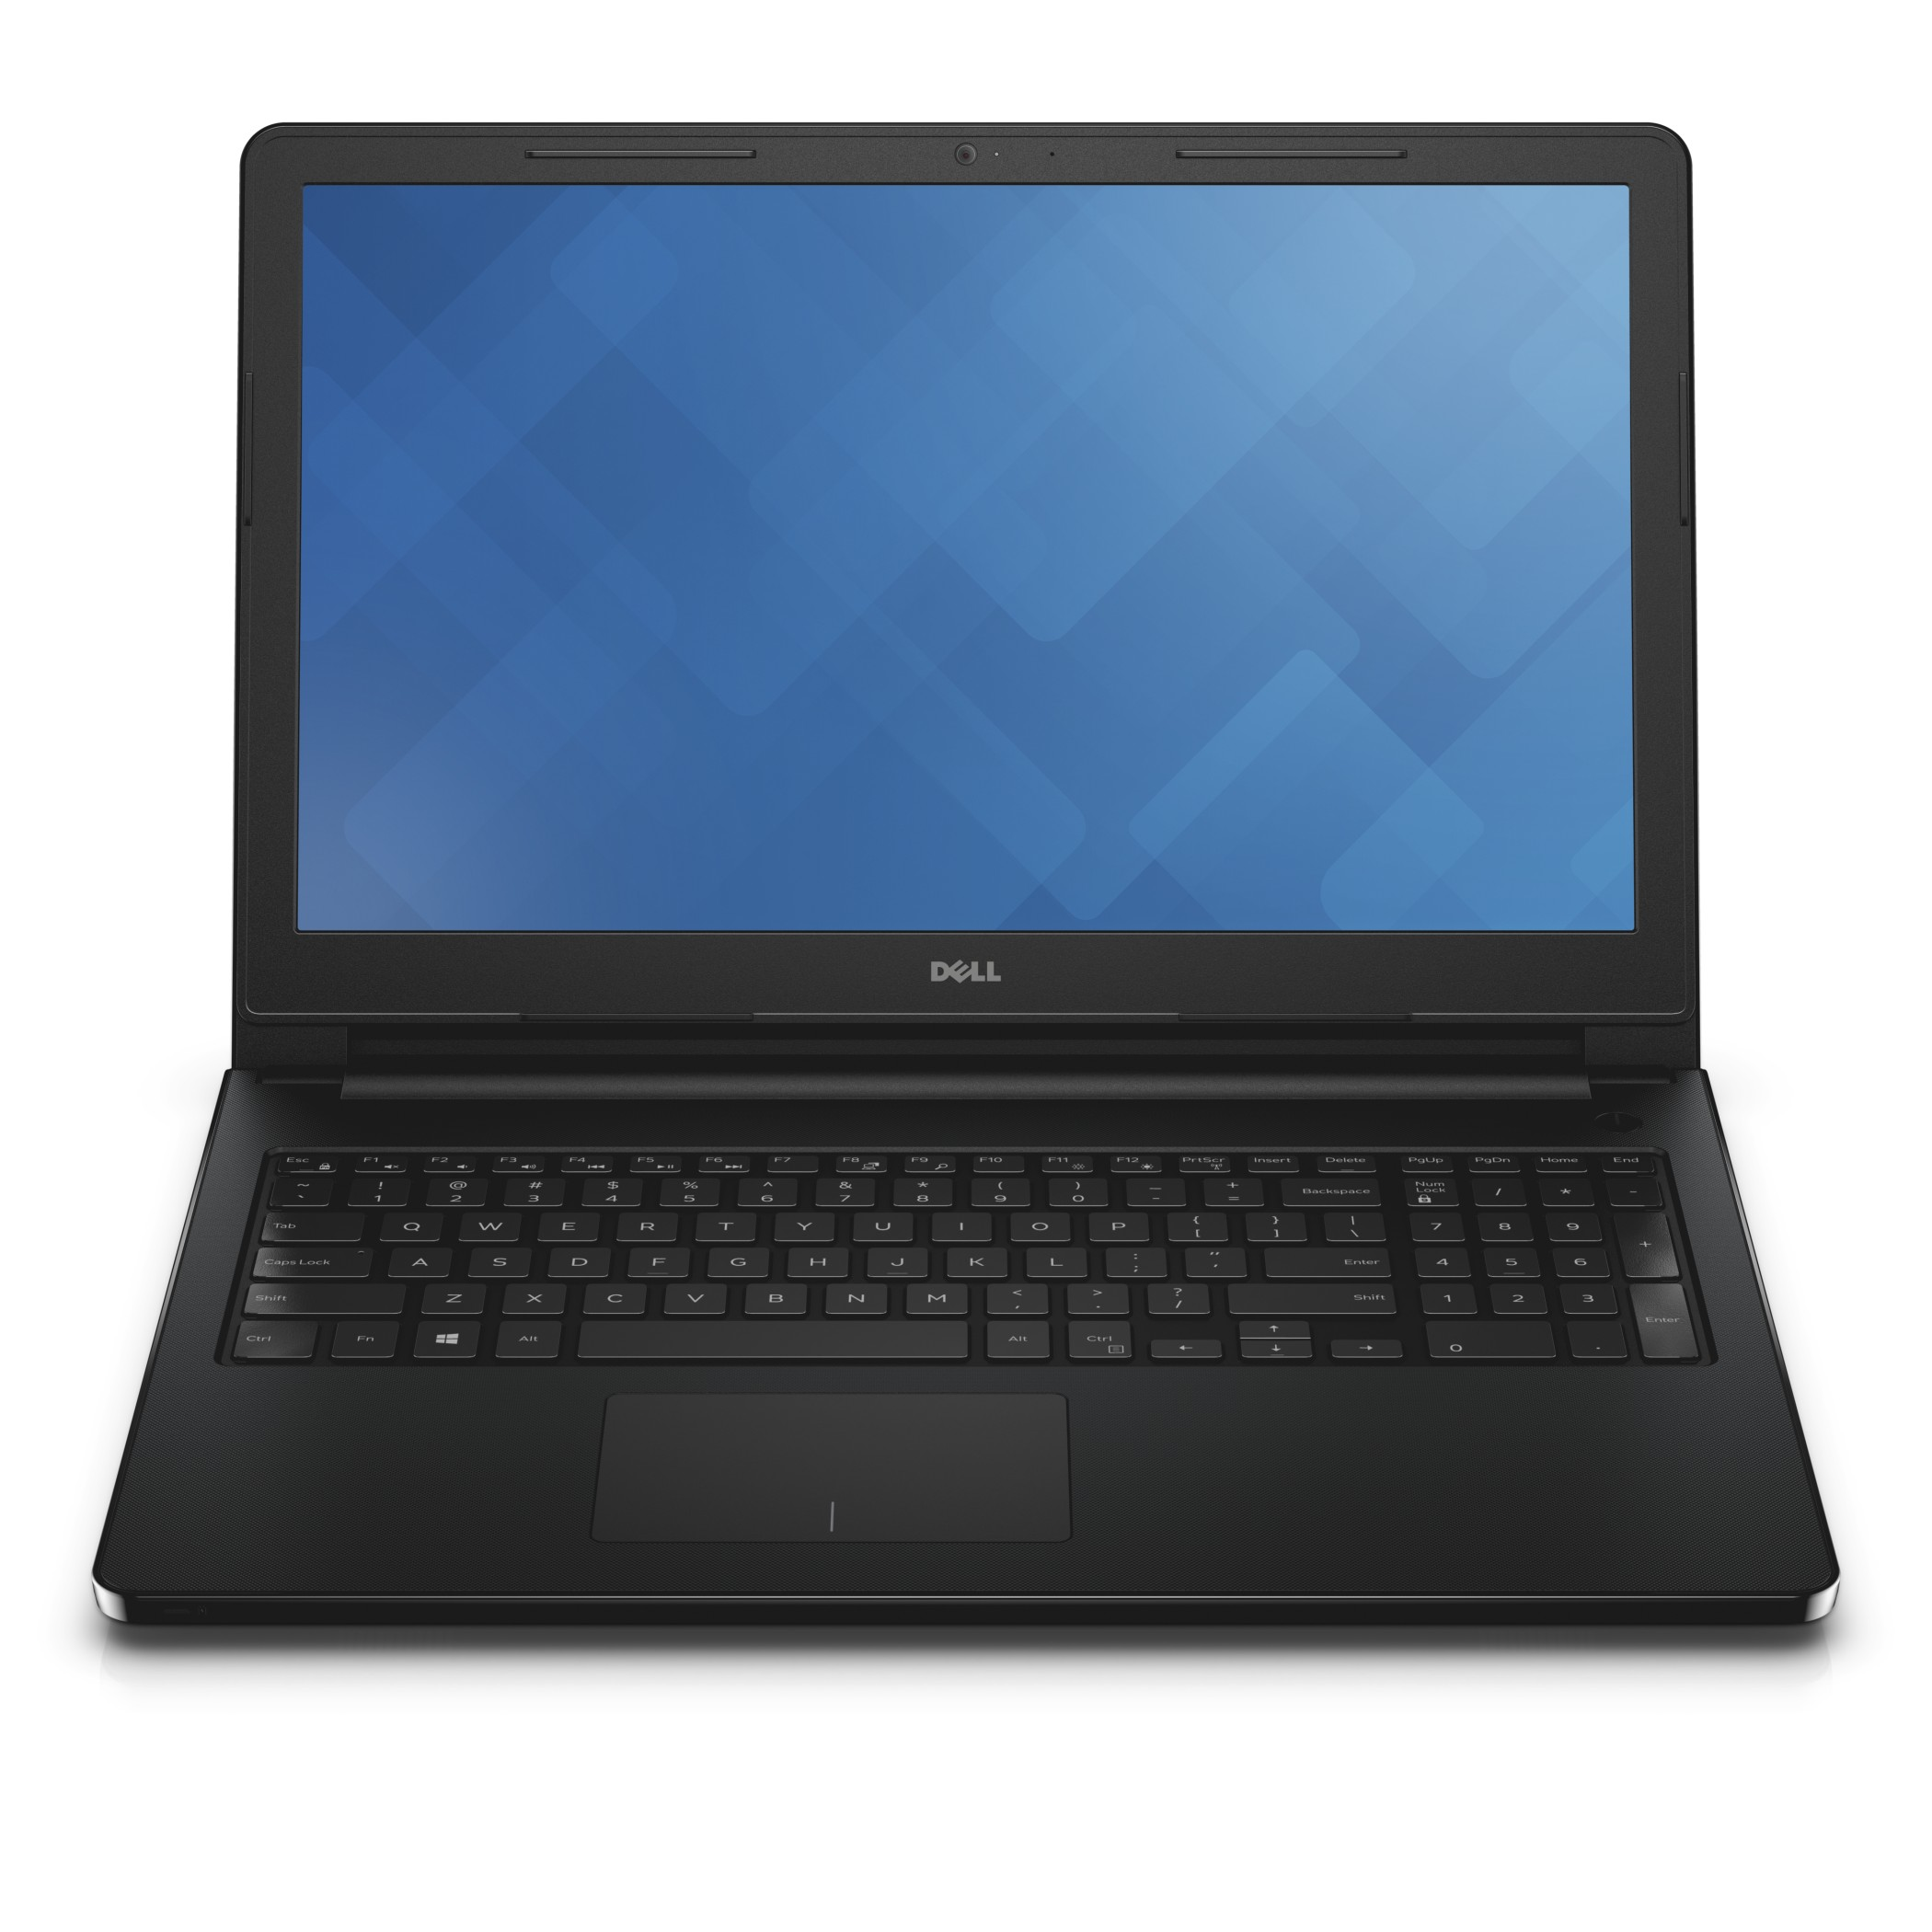 Notebook Dell Inspiron 3552 15.6 HD Intel Pentium N3710 RAM 4GB HDD 500GB Windows 10 Home Negru